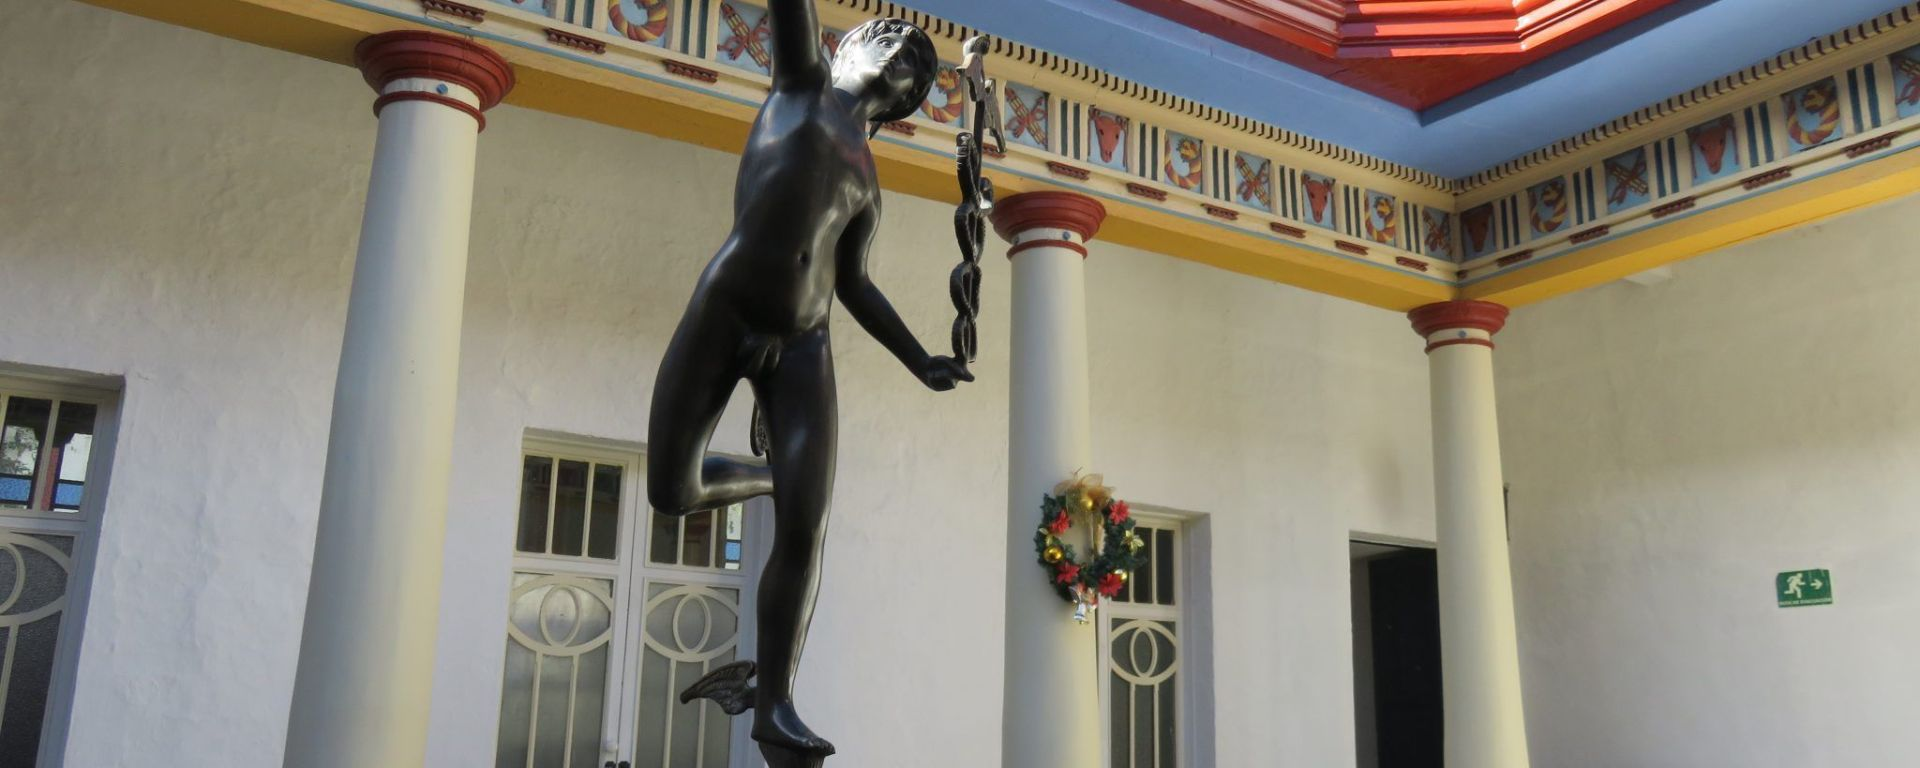 Hermes, Popayán, Colombia